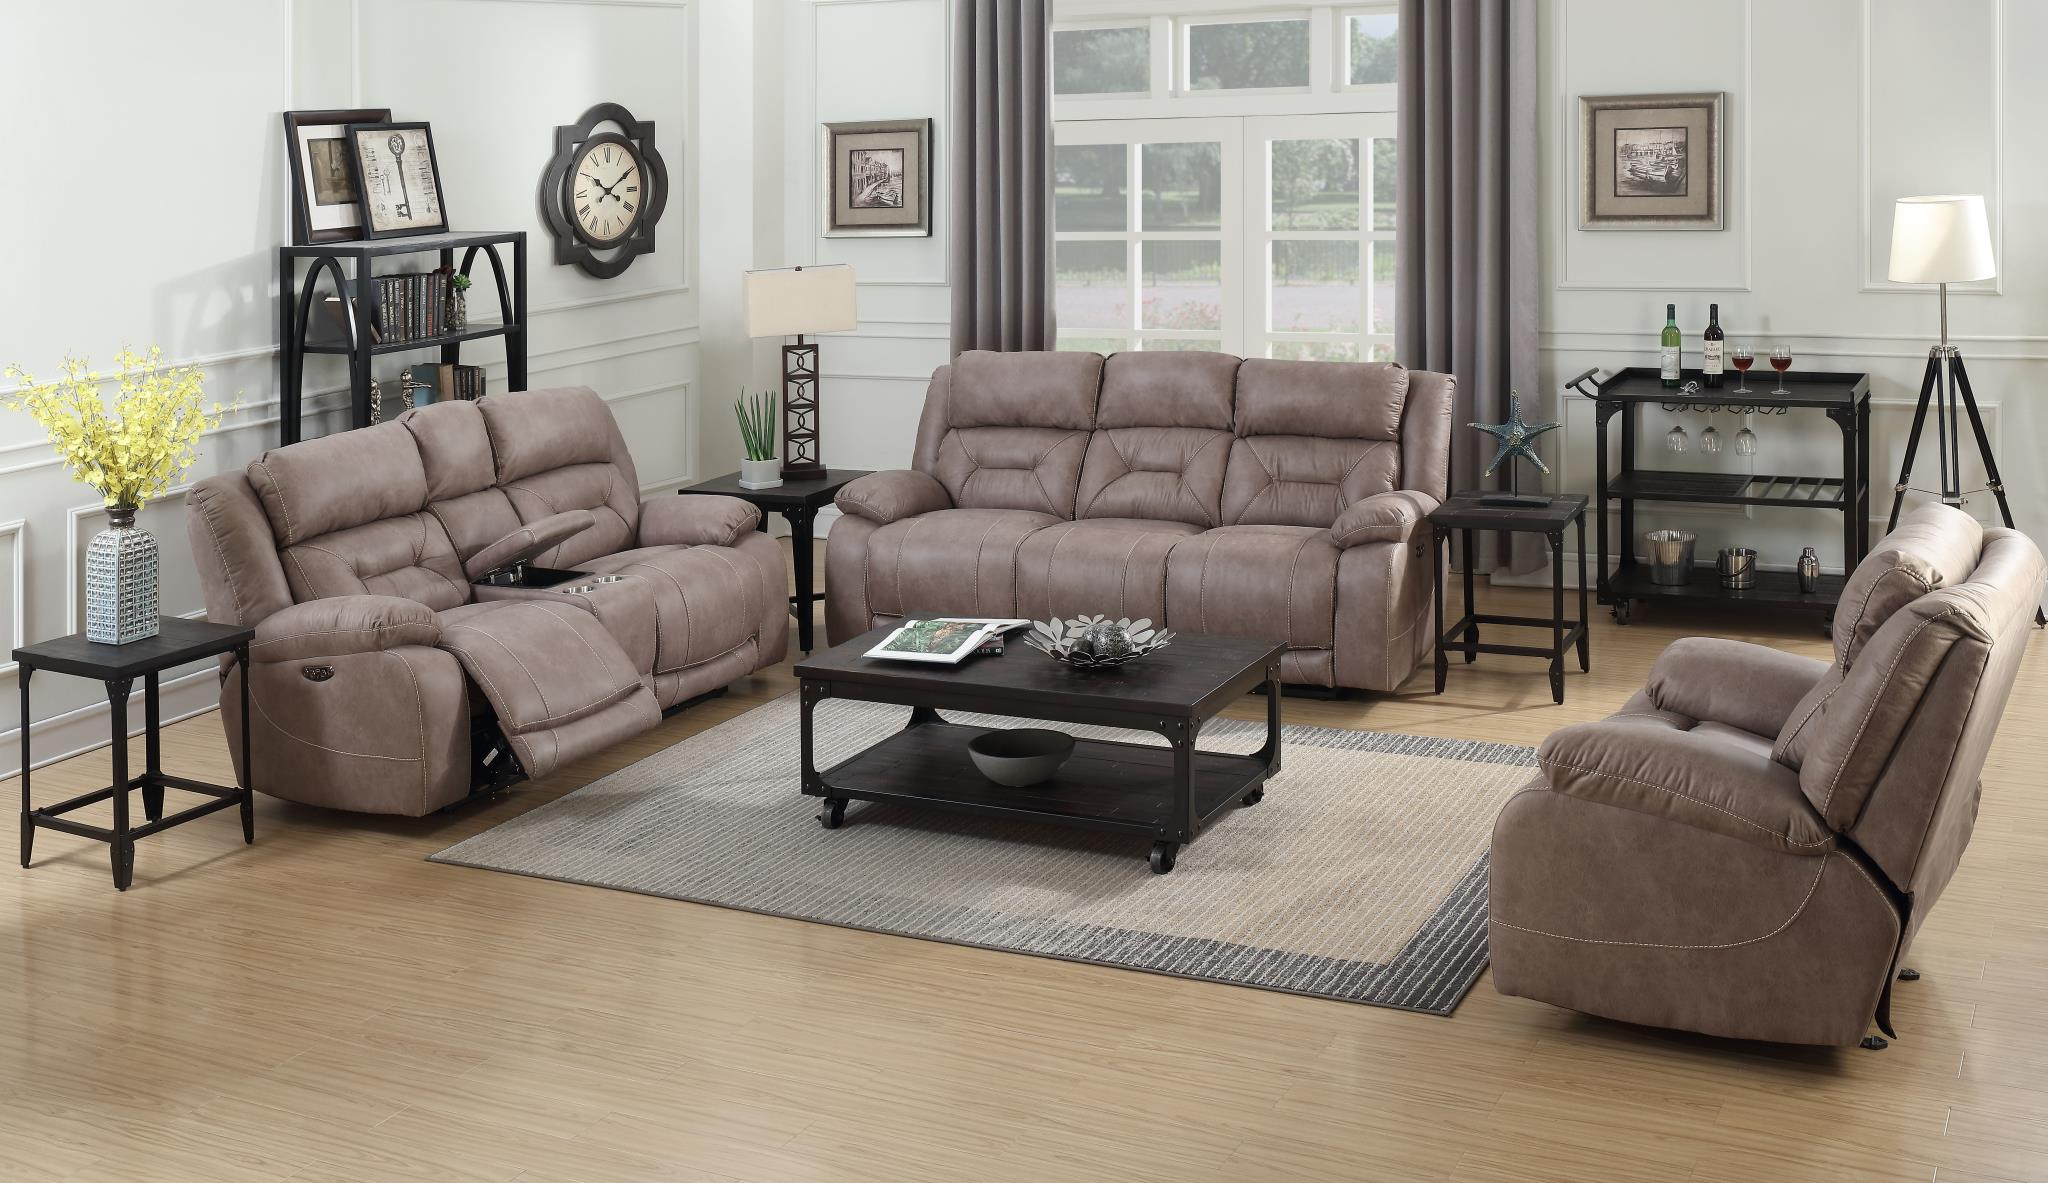 7 Day Furniture Omaha Lincoln pertaining to 12 Some of the Coolest Ideas How to Make Rooms To Go Living Room Set With Free Tv